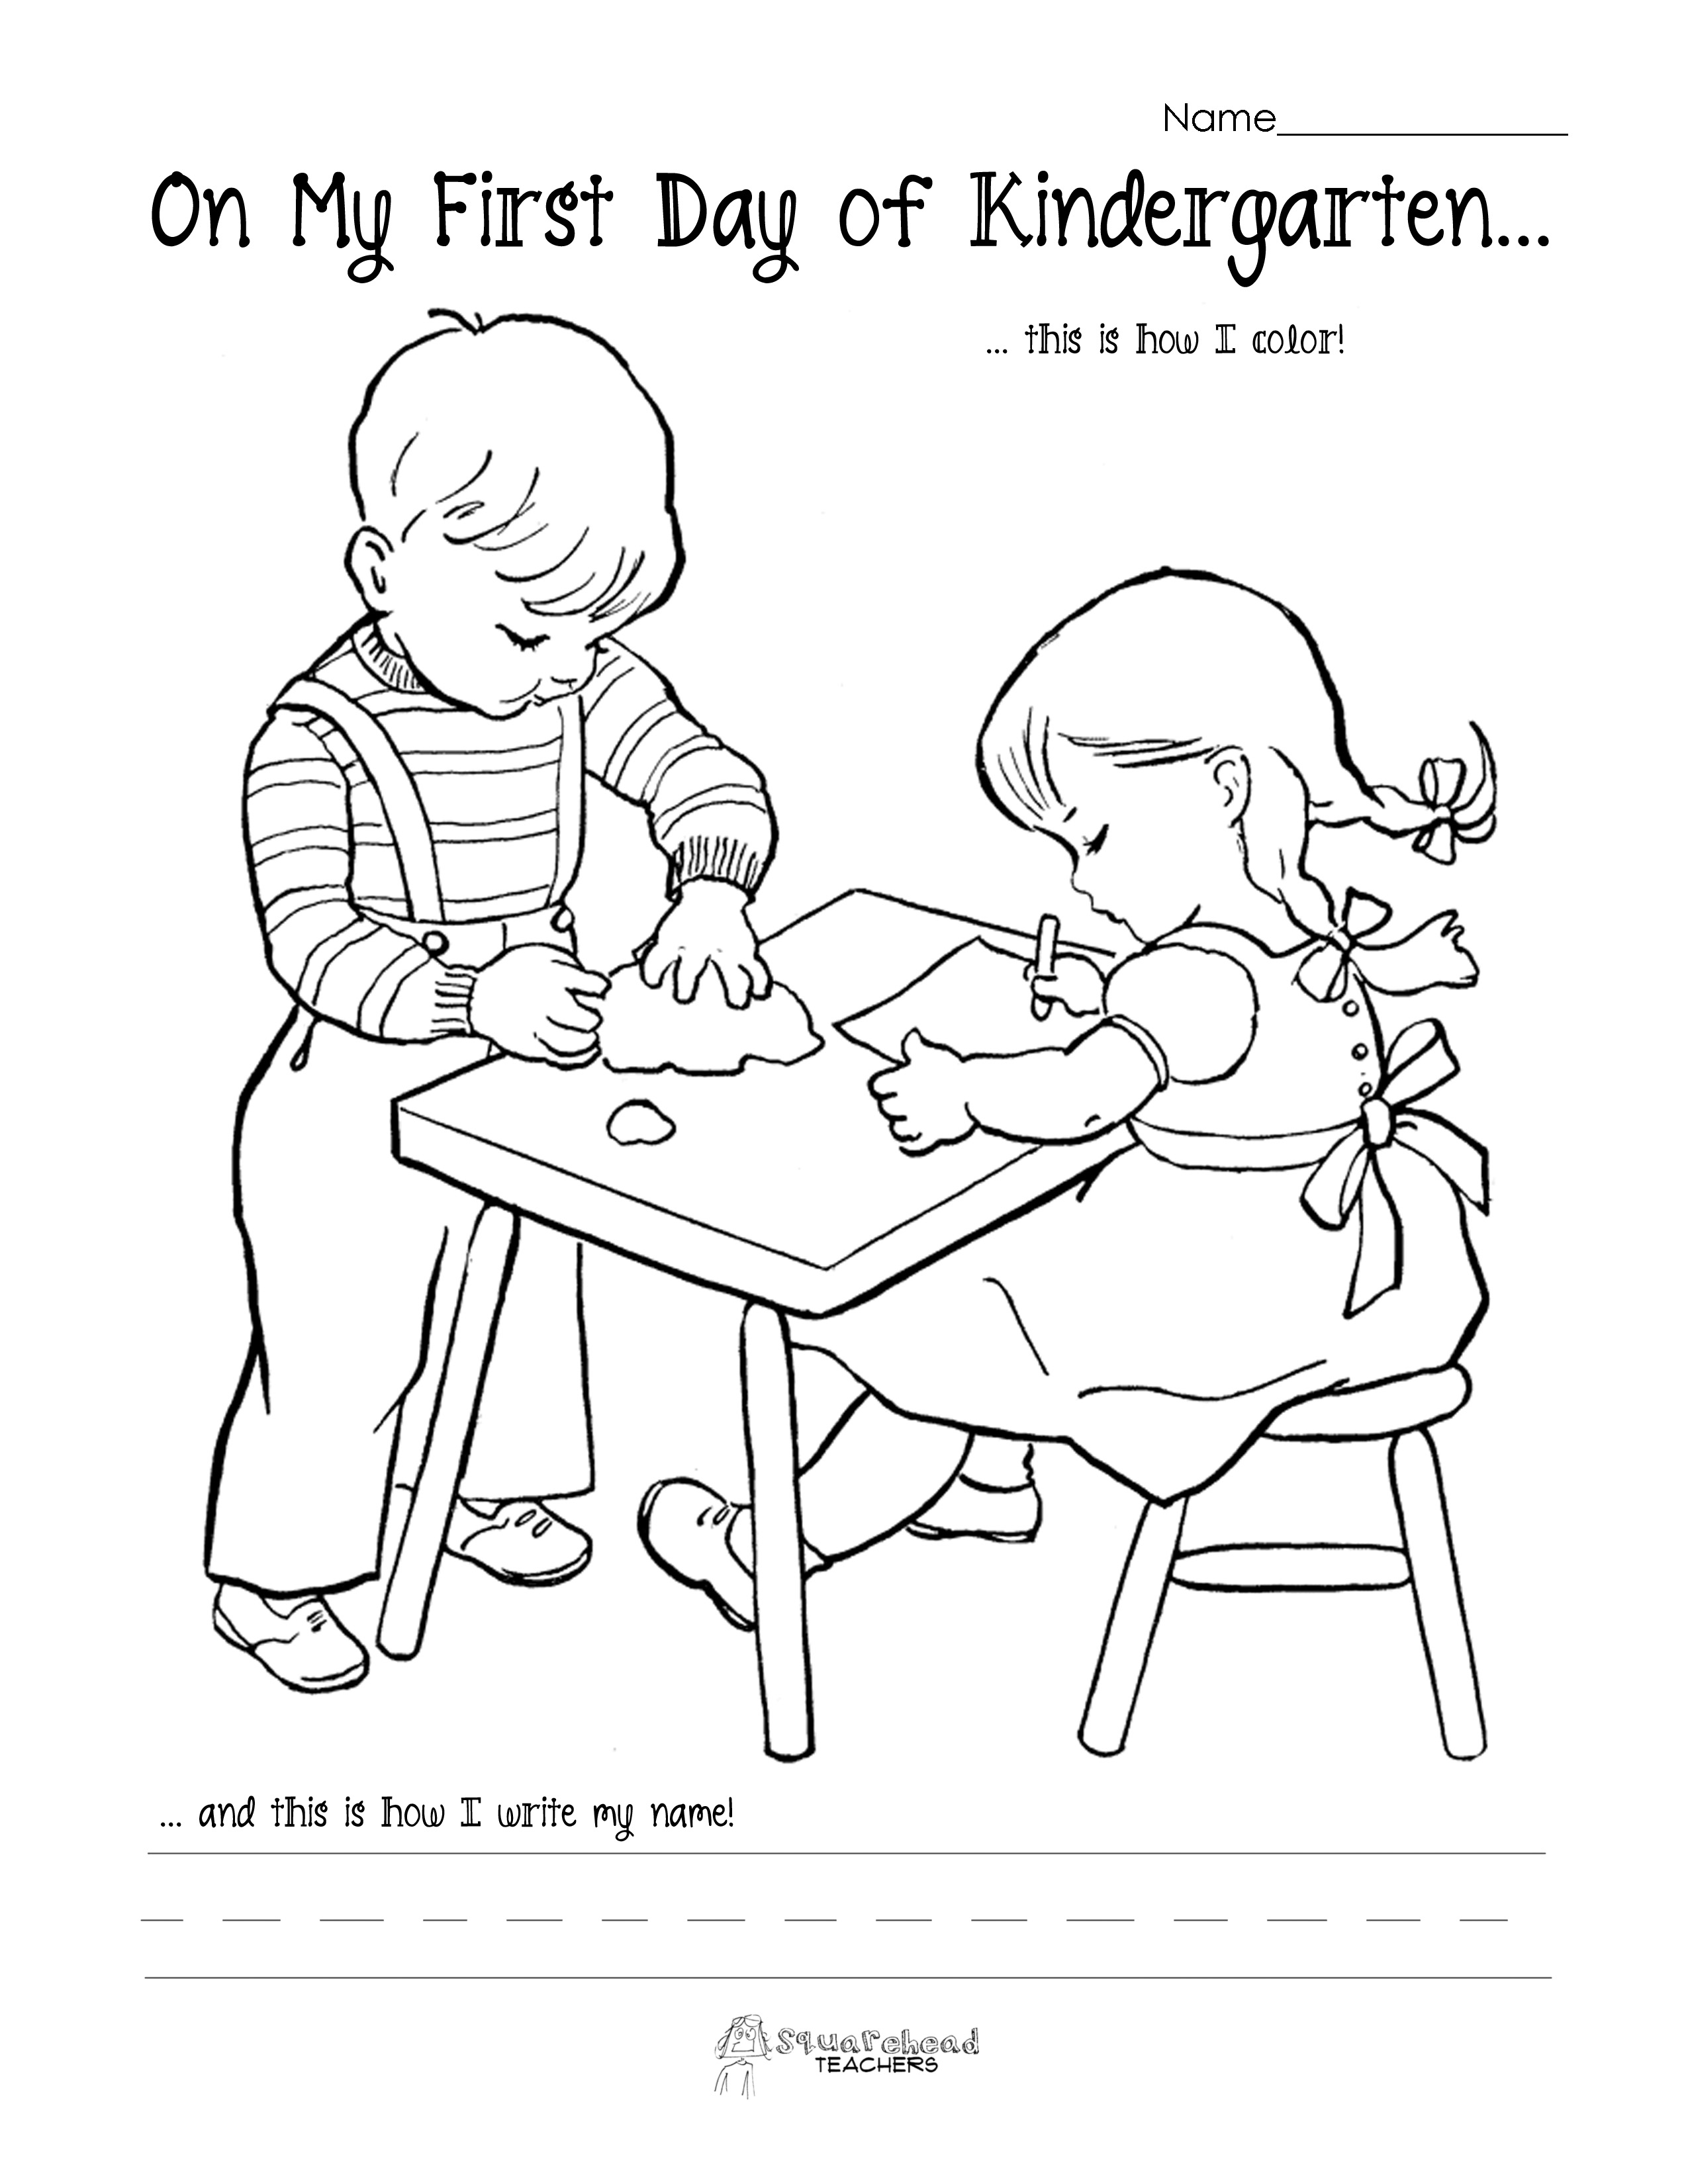 Free Coloring Pages Of School For Kindergarten School Coloring Pages For Kindergarten